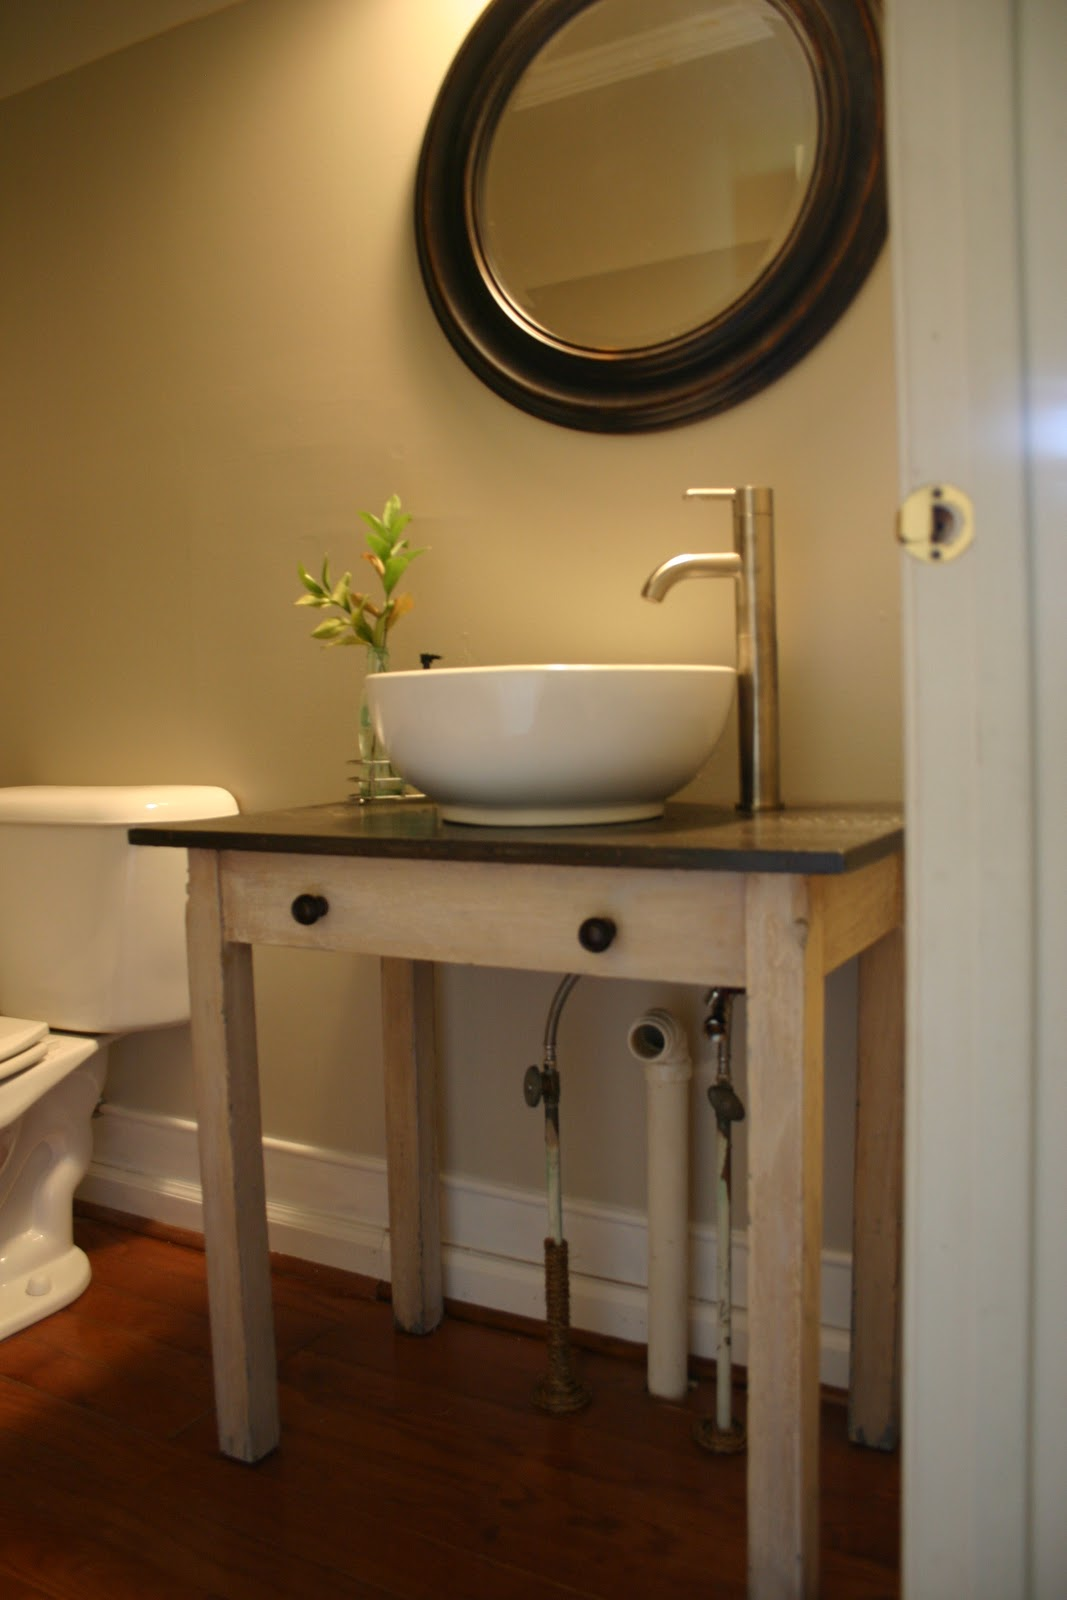 Getting Down To Business East Coast Creative Blog - Bathroom vanity pipes